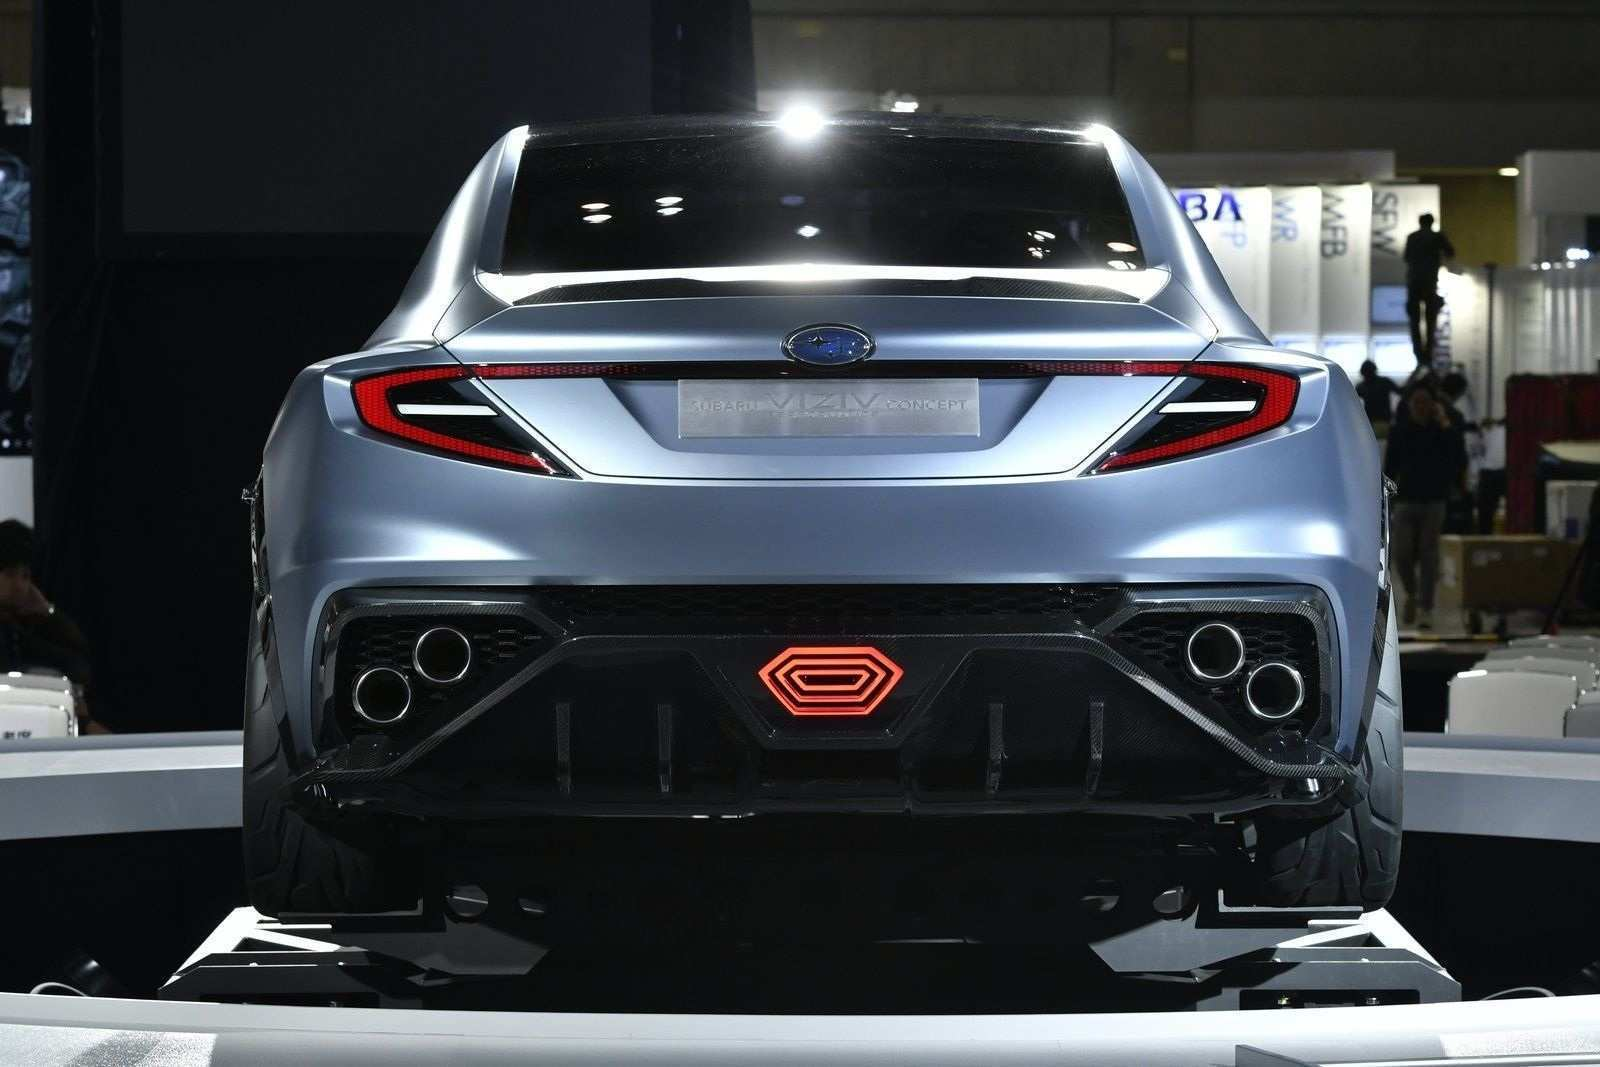 77 A 2020 Subaru Brz Sti Turbo Performance